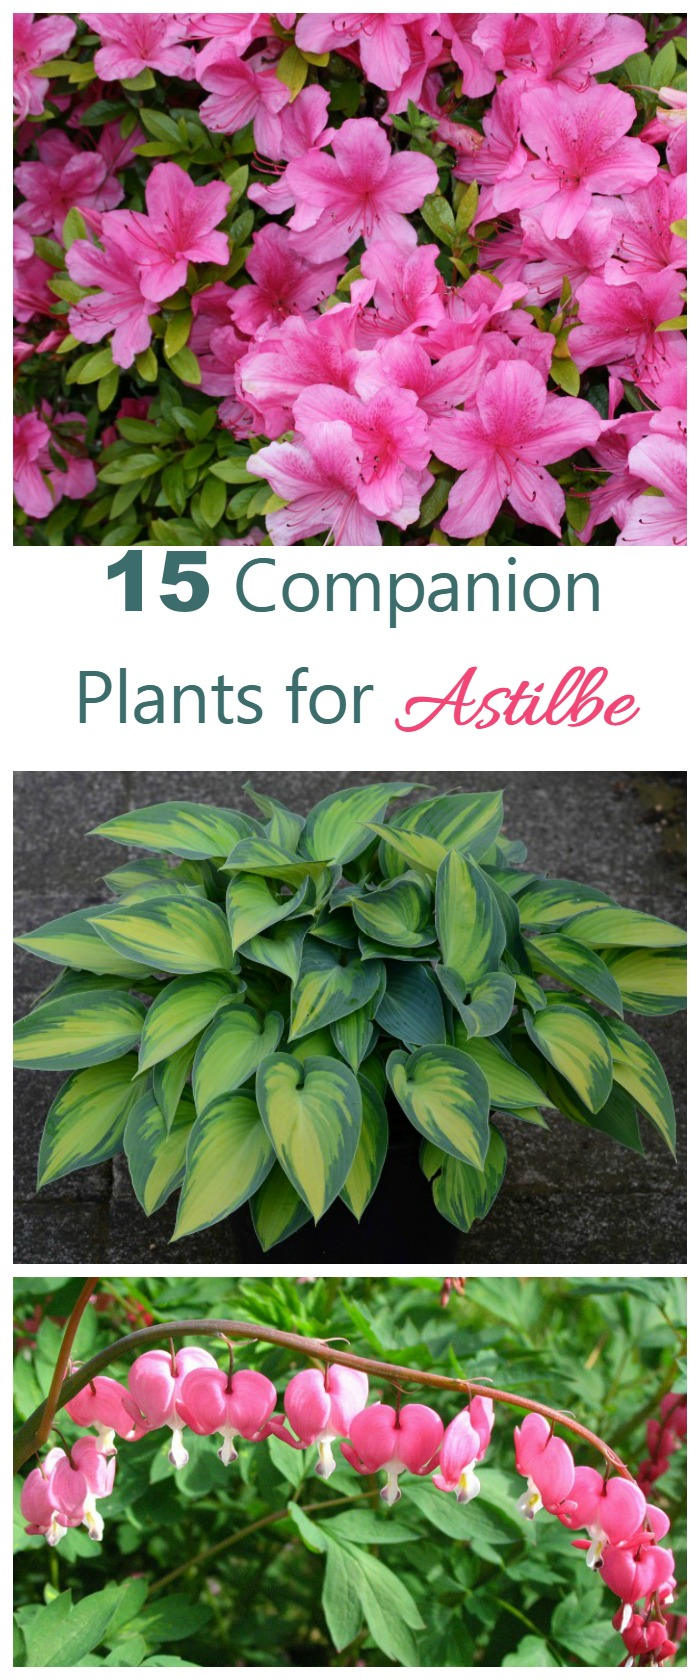 These 15 perennials and annuals make great astilbe companion plants. Most love the same shade and moisture requirements and make a great looking garden bed.